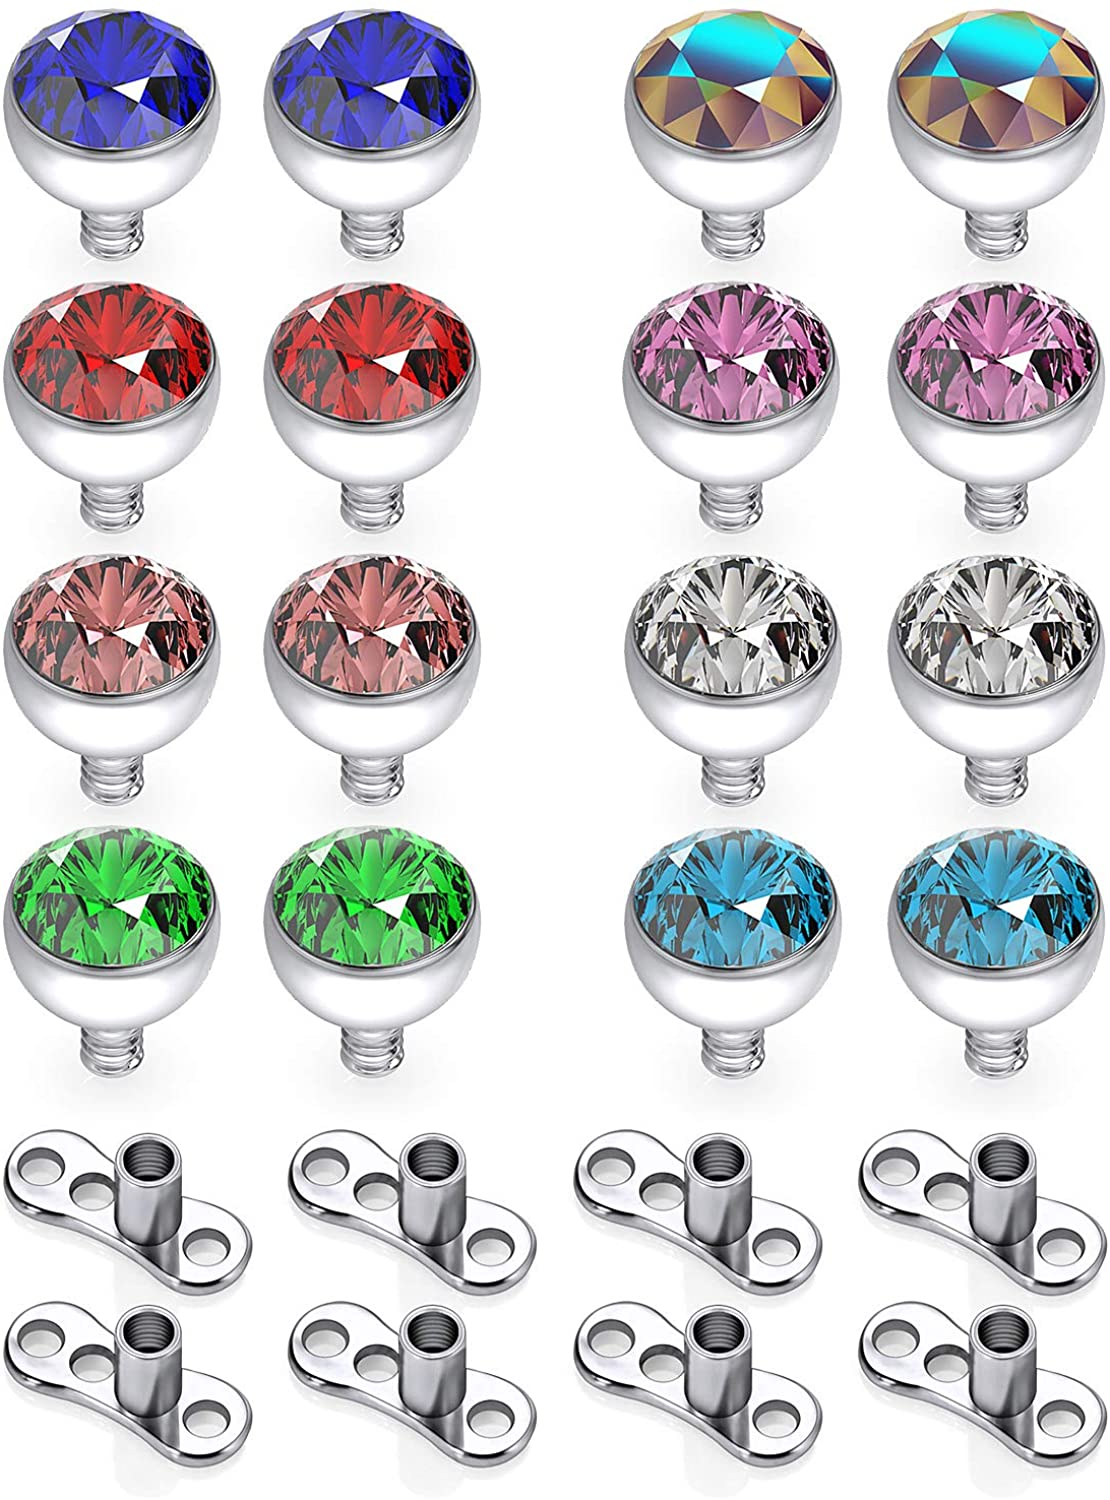 Hoeudjo 24-30PCS 14g Multicolor CZ Dermal Anchor Tops and Base Titanium Microdermals Piercing Jewelry for Women Men 2mm 3mm 4mm